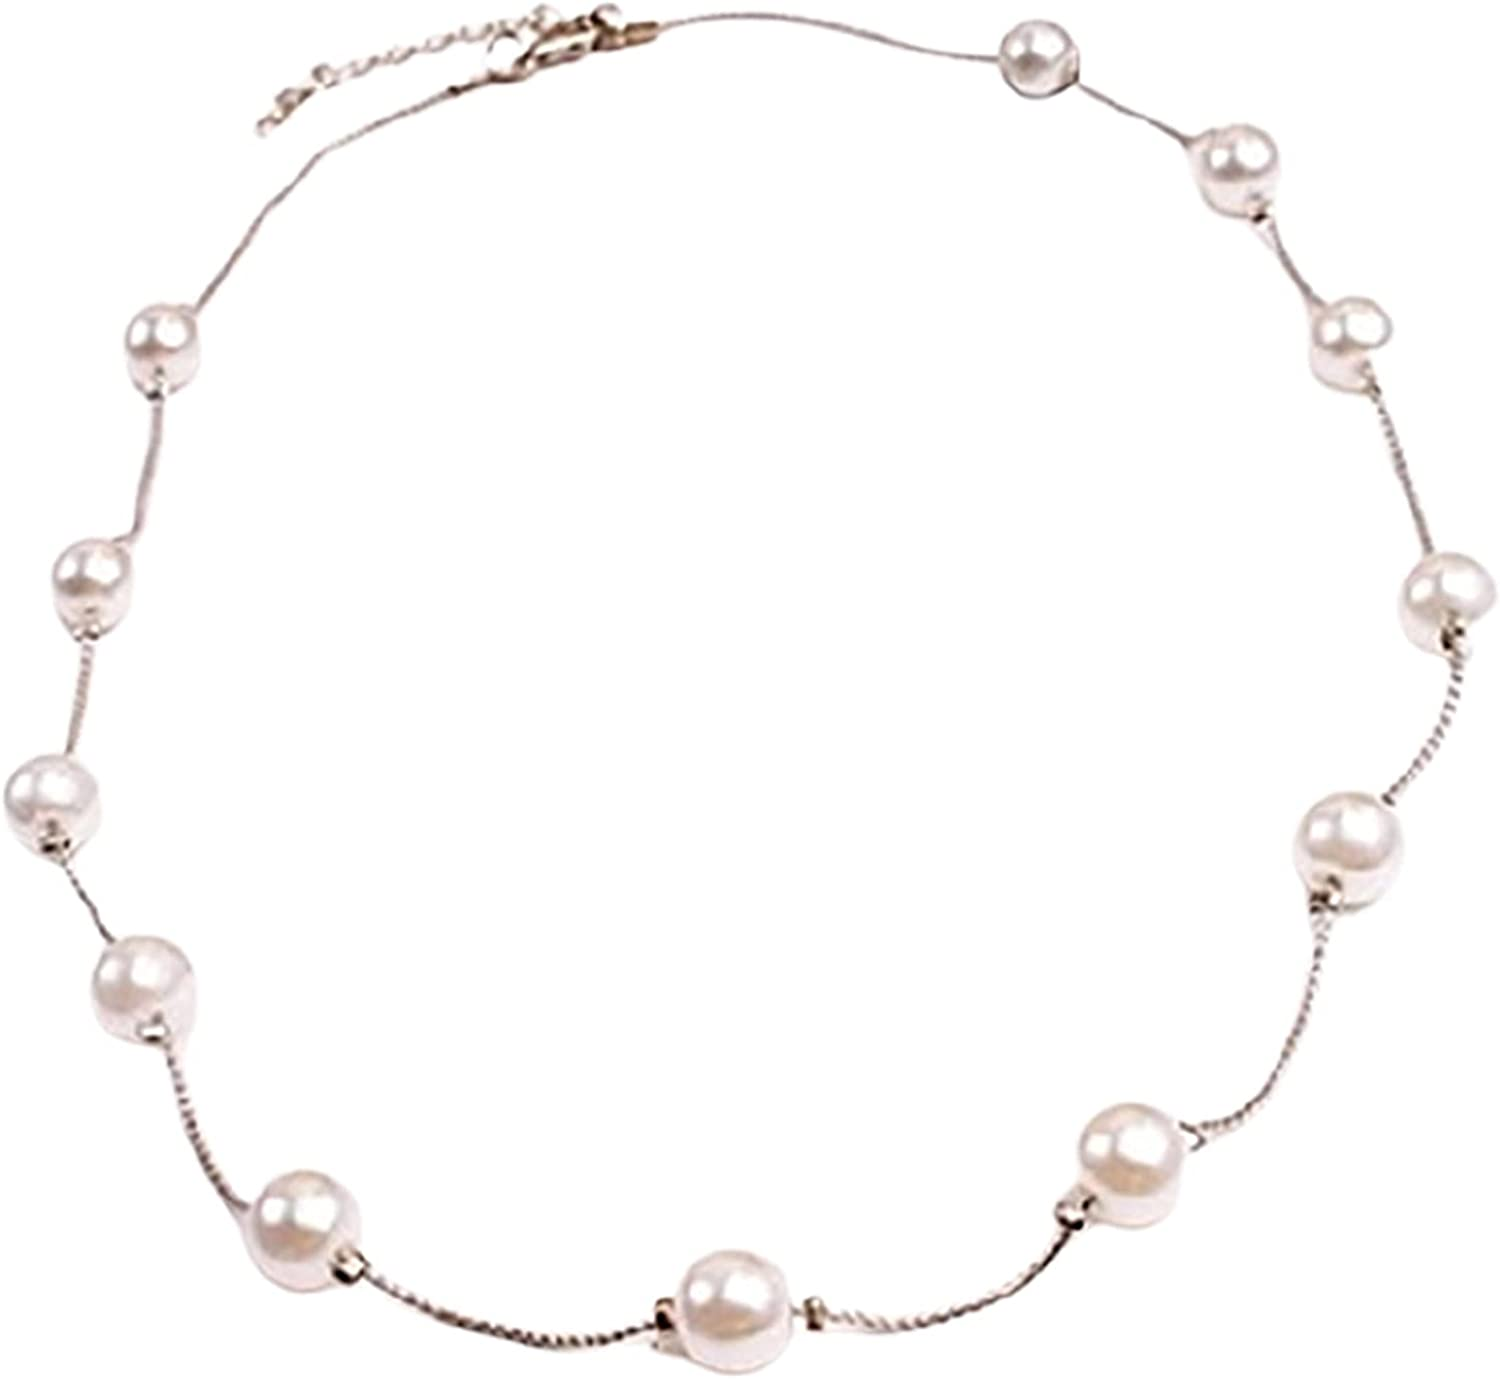 Dainty Necklace for Women,Necklace Single Layer Adjustable Alloy Women Faux Pearl Clavicle Chain for Wedding